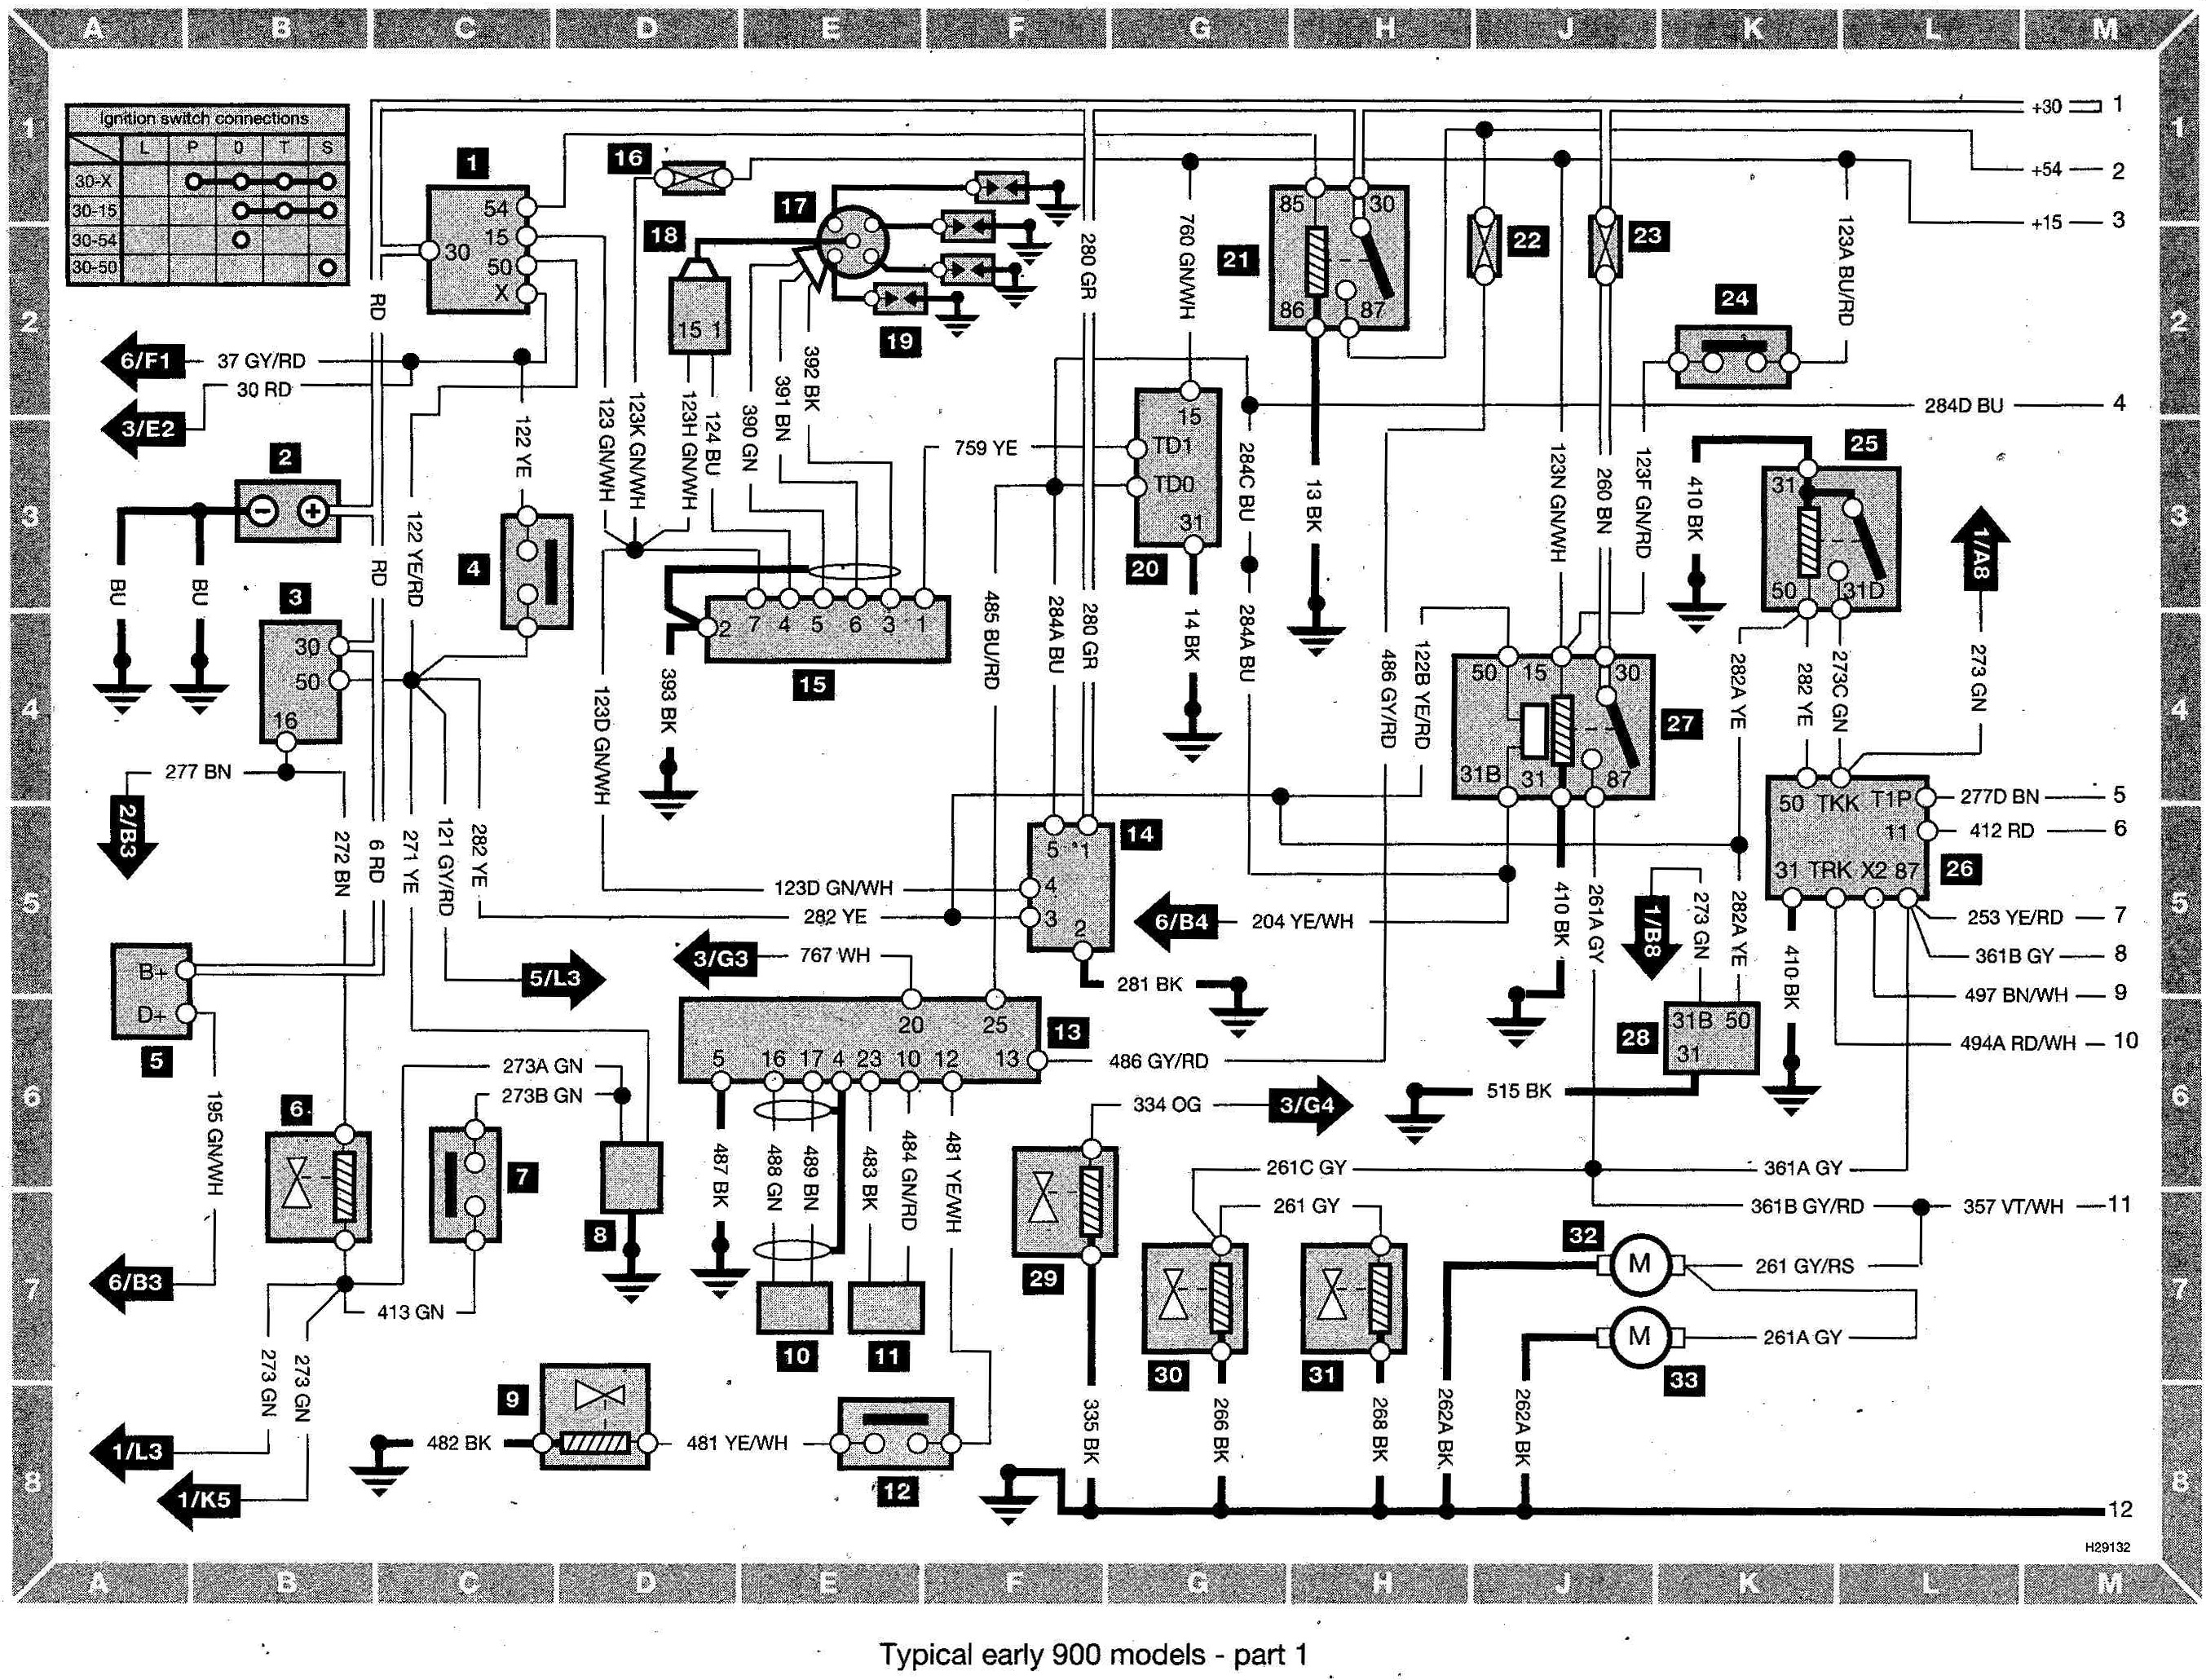 1992 saab 900 wiring diagram 15 6 tridonicsignage de \u2022wiring diagram 1989 saab 900 best wiring library rh 191 princestaash org saab 900 ignition saab electrical wiring diagrams